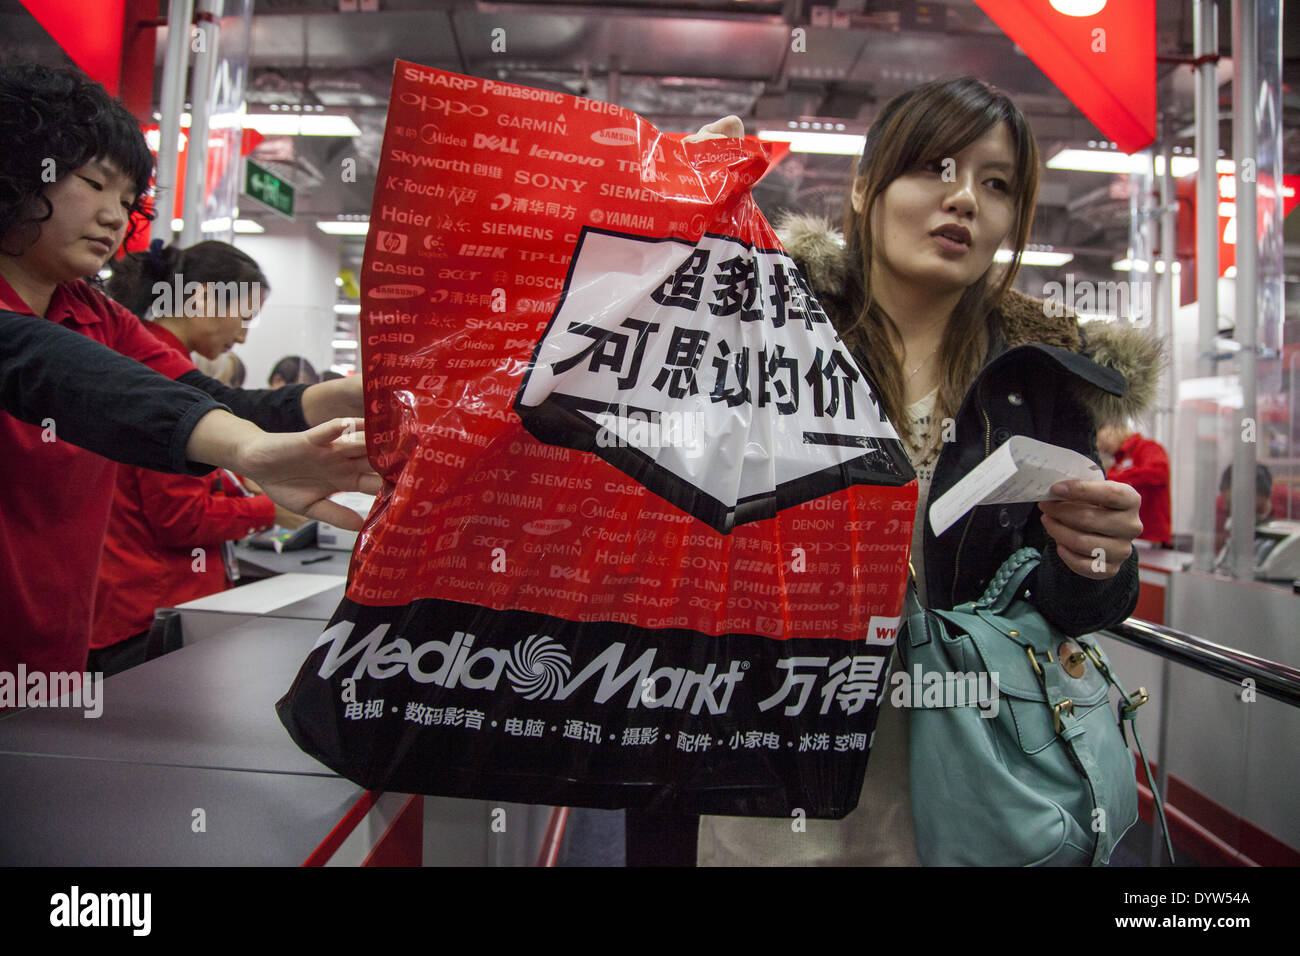 A customer carries a branded shopping bag as he exits a Media Markt store in Shanghai - Stock Image